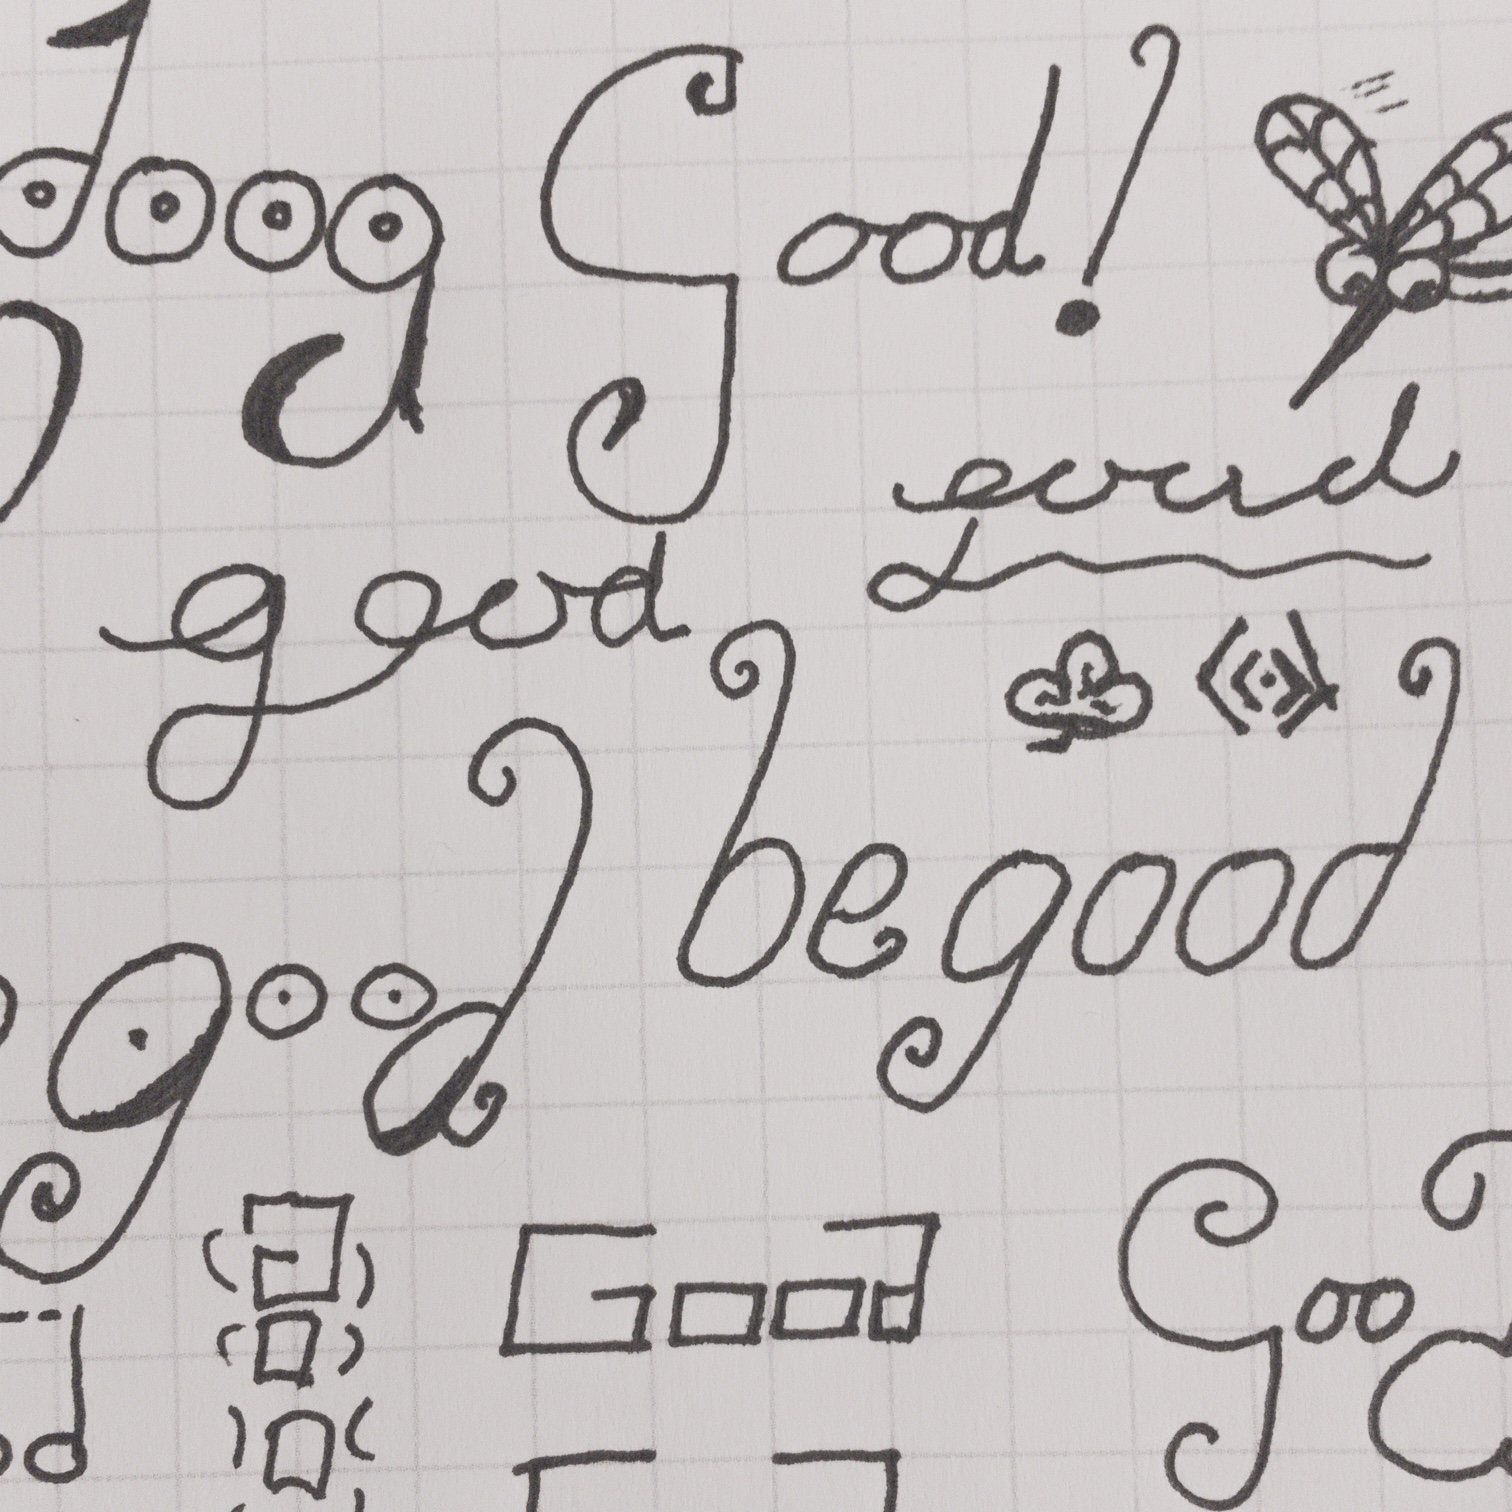 Photo of a gridded page with Good doodled in ink.